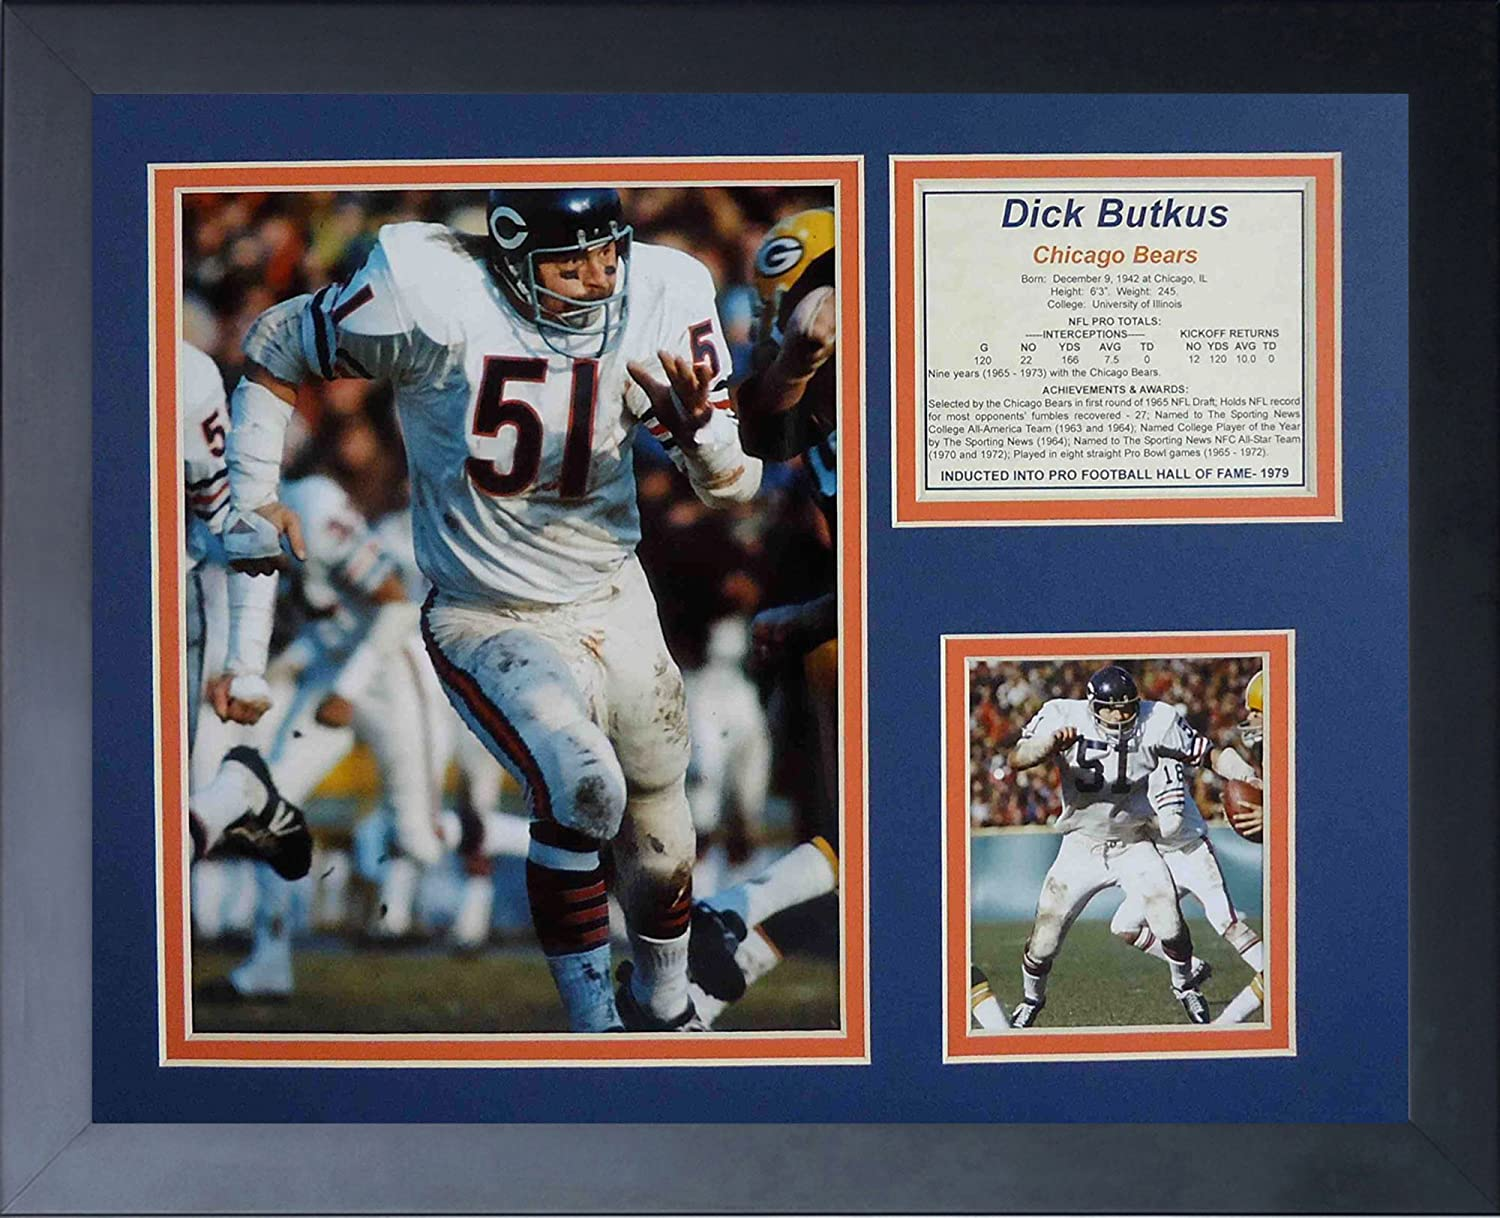 Legends Never Die Dick Butkus Home Framed Photo Collage 11 x 14-Inch